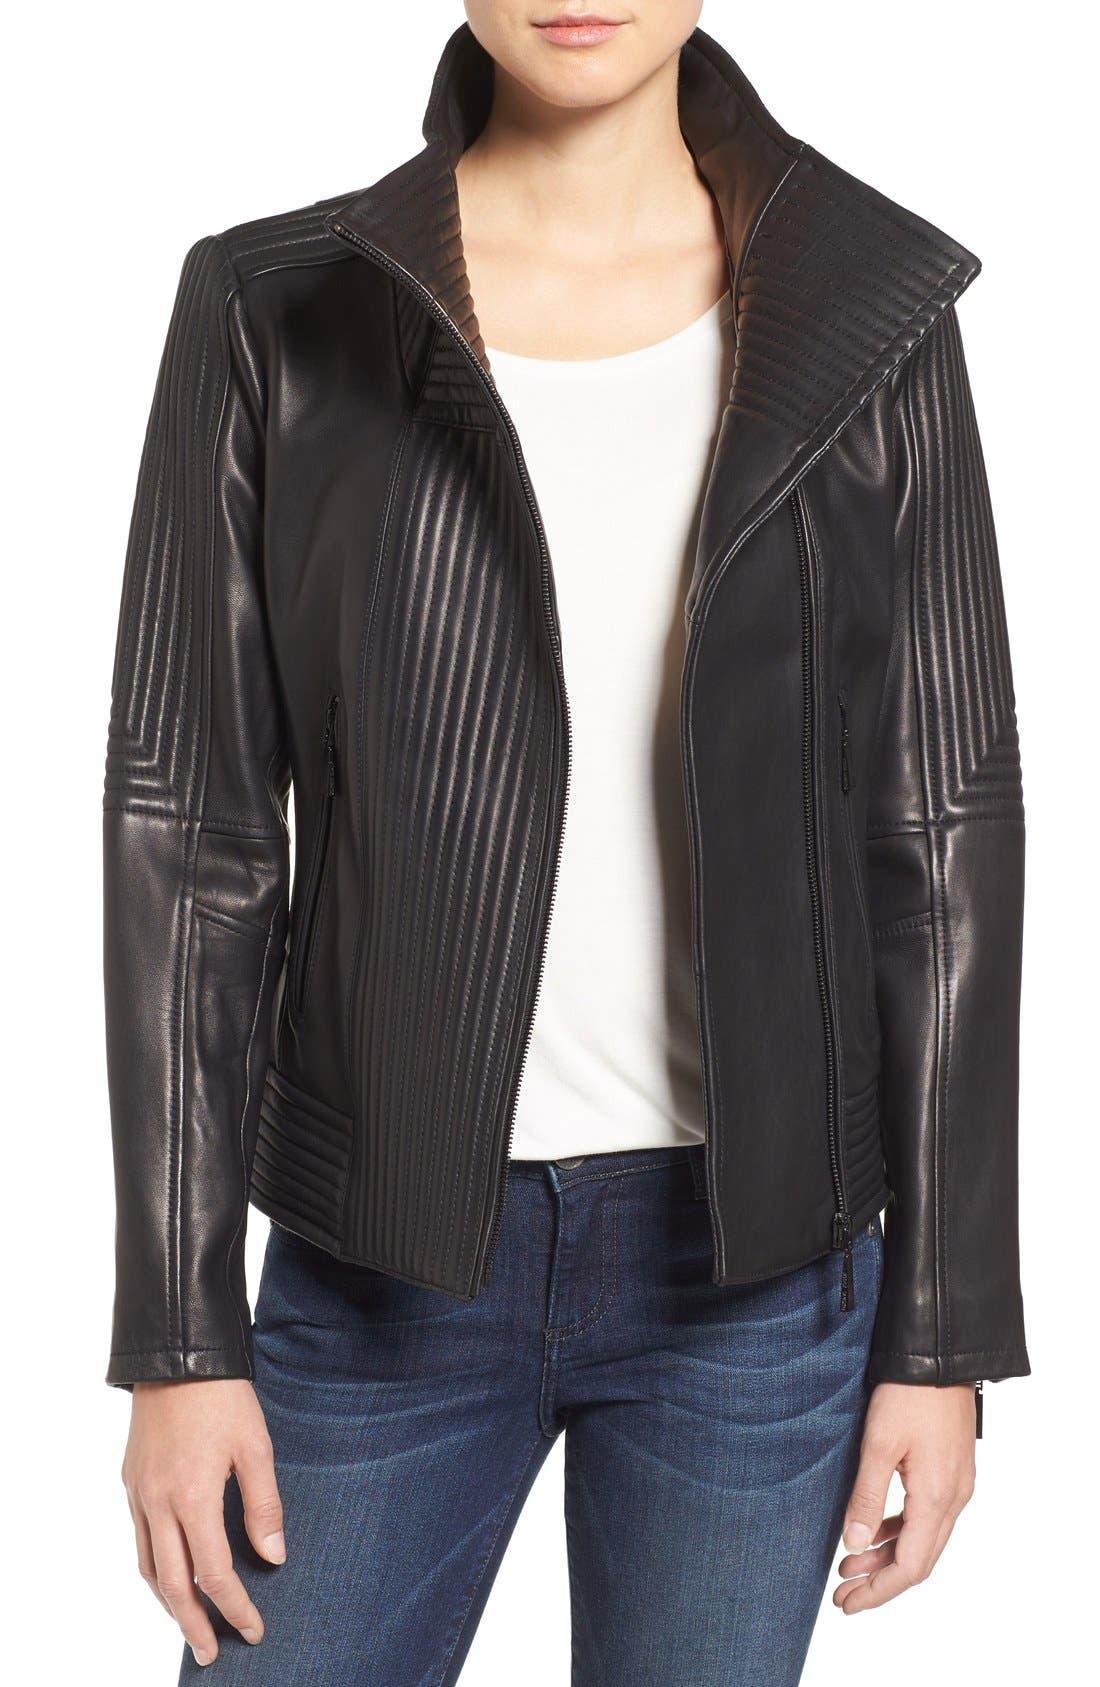 Alternate Image 1 Selected - Vince Camuto Trapunto Leather Jacket